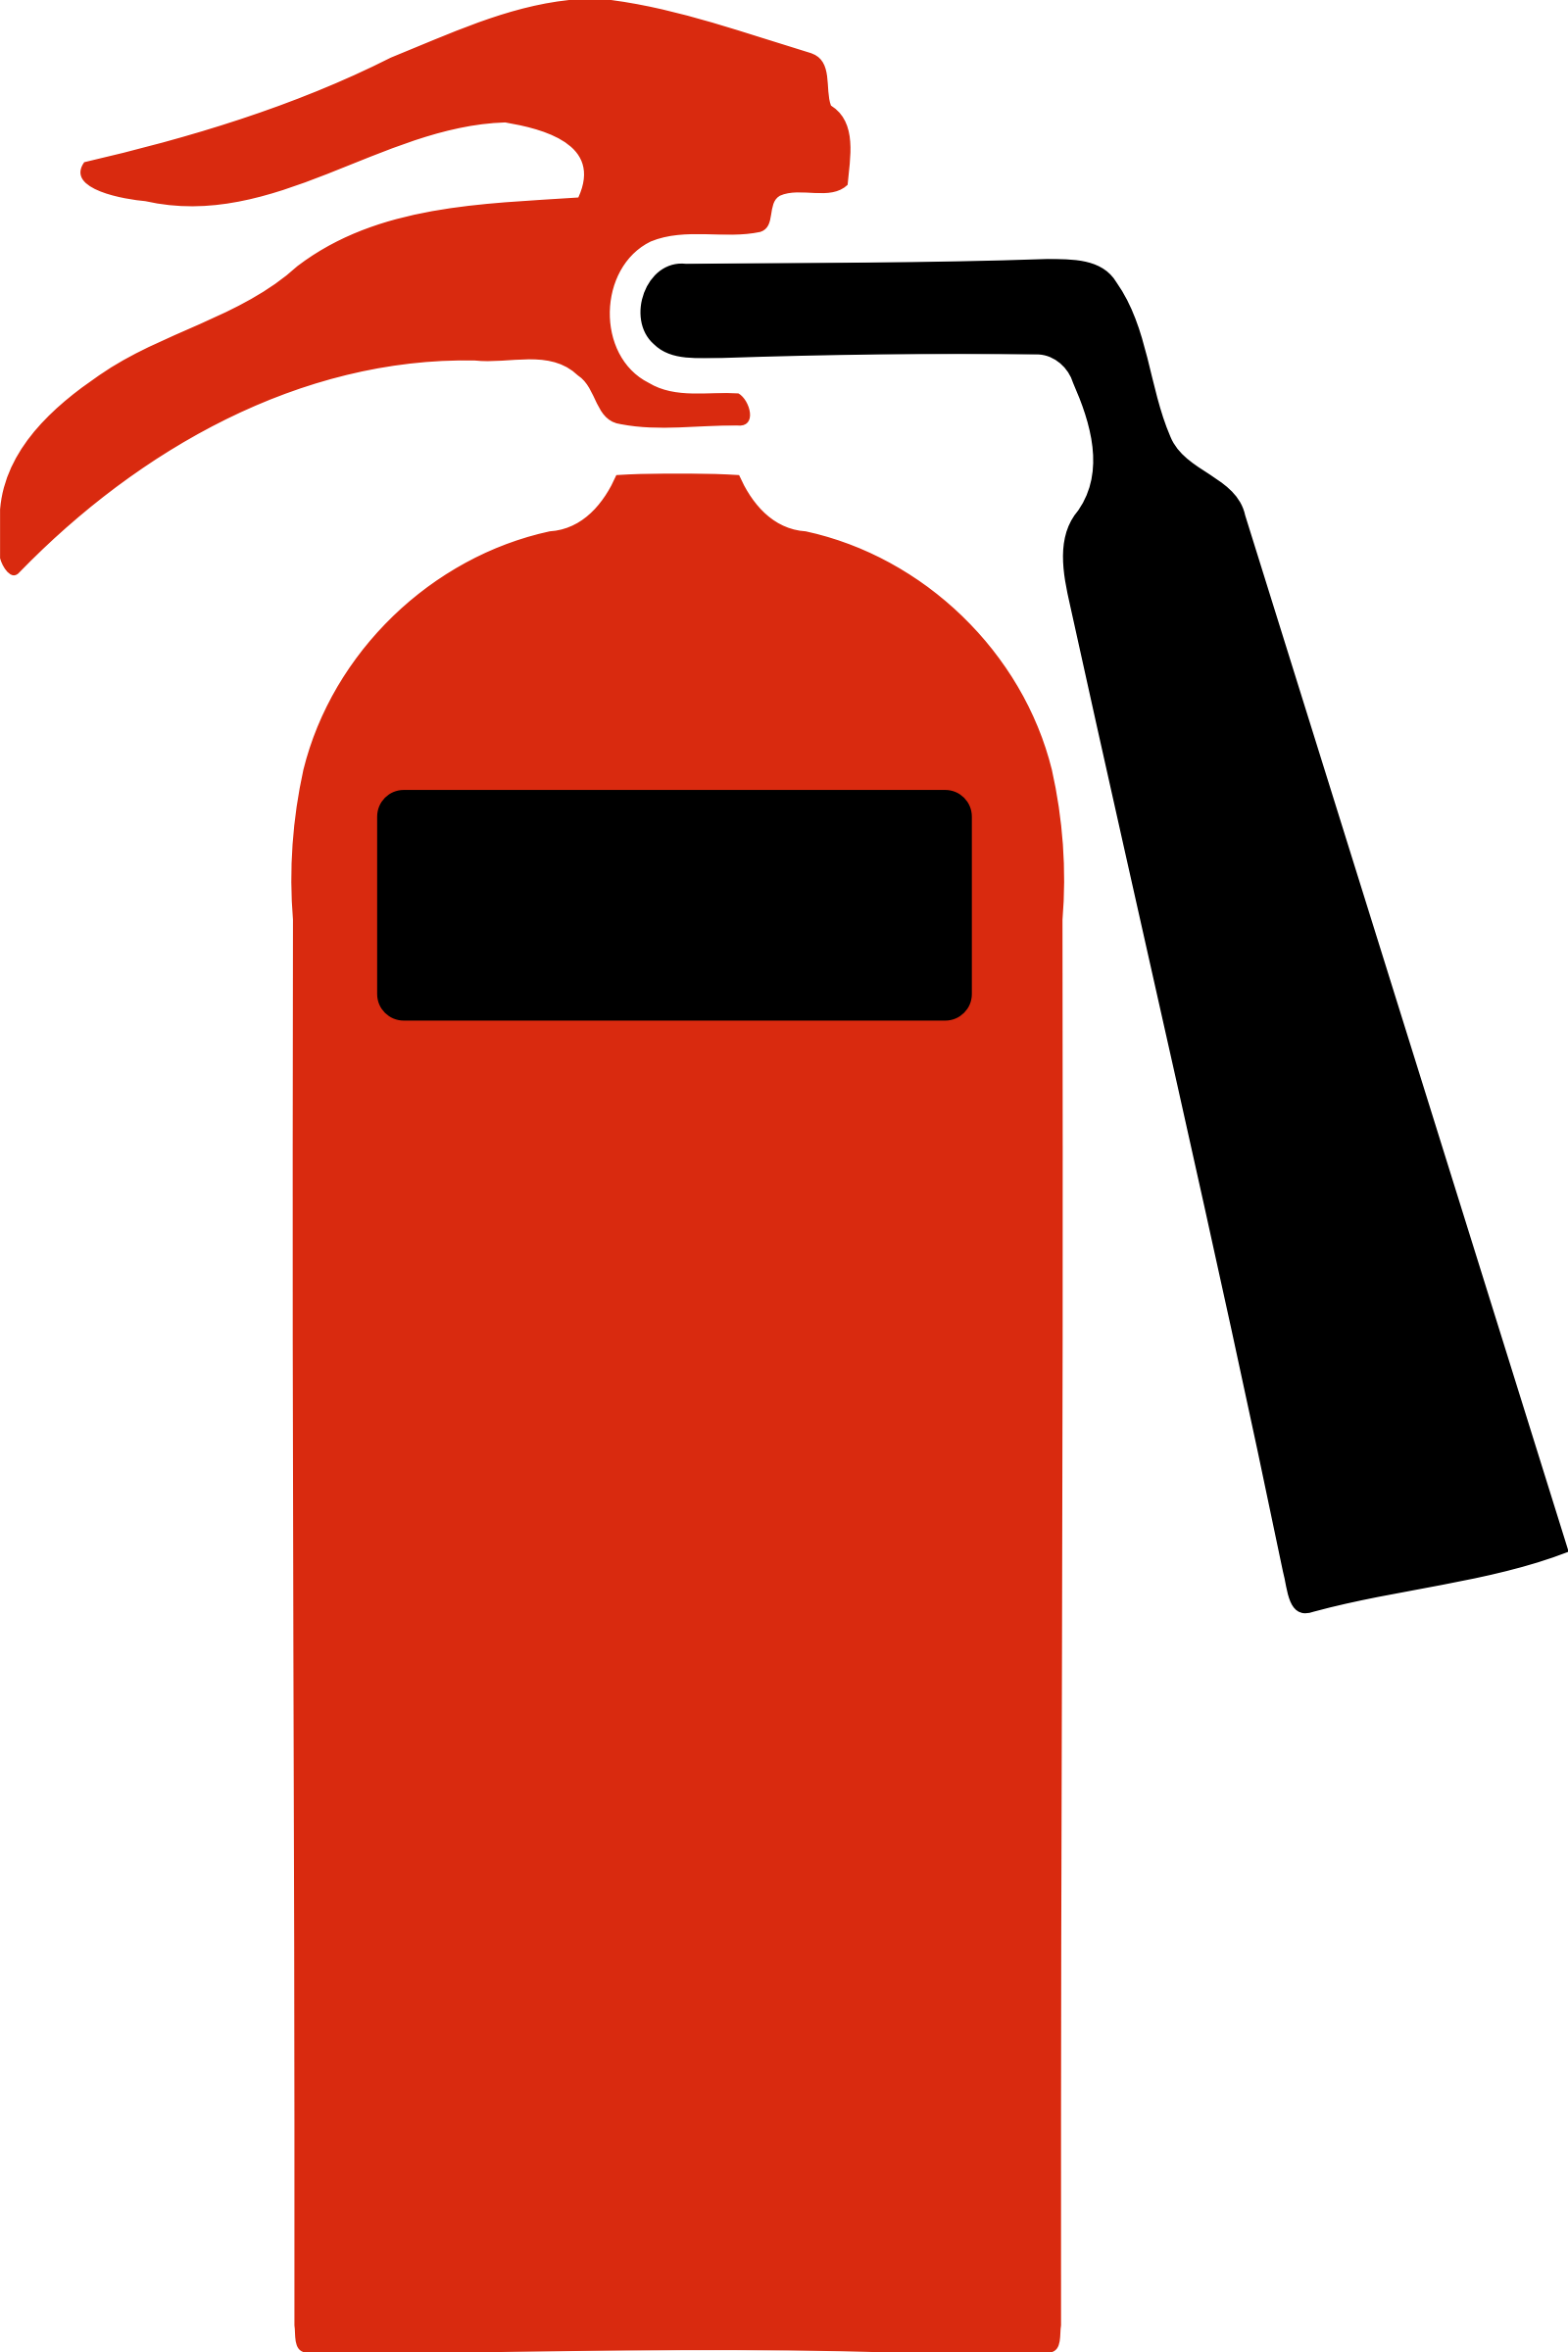 clipart transparent download Extinguisher clipart. Fire carbon dioxide big.